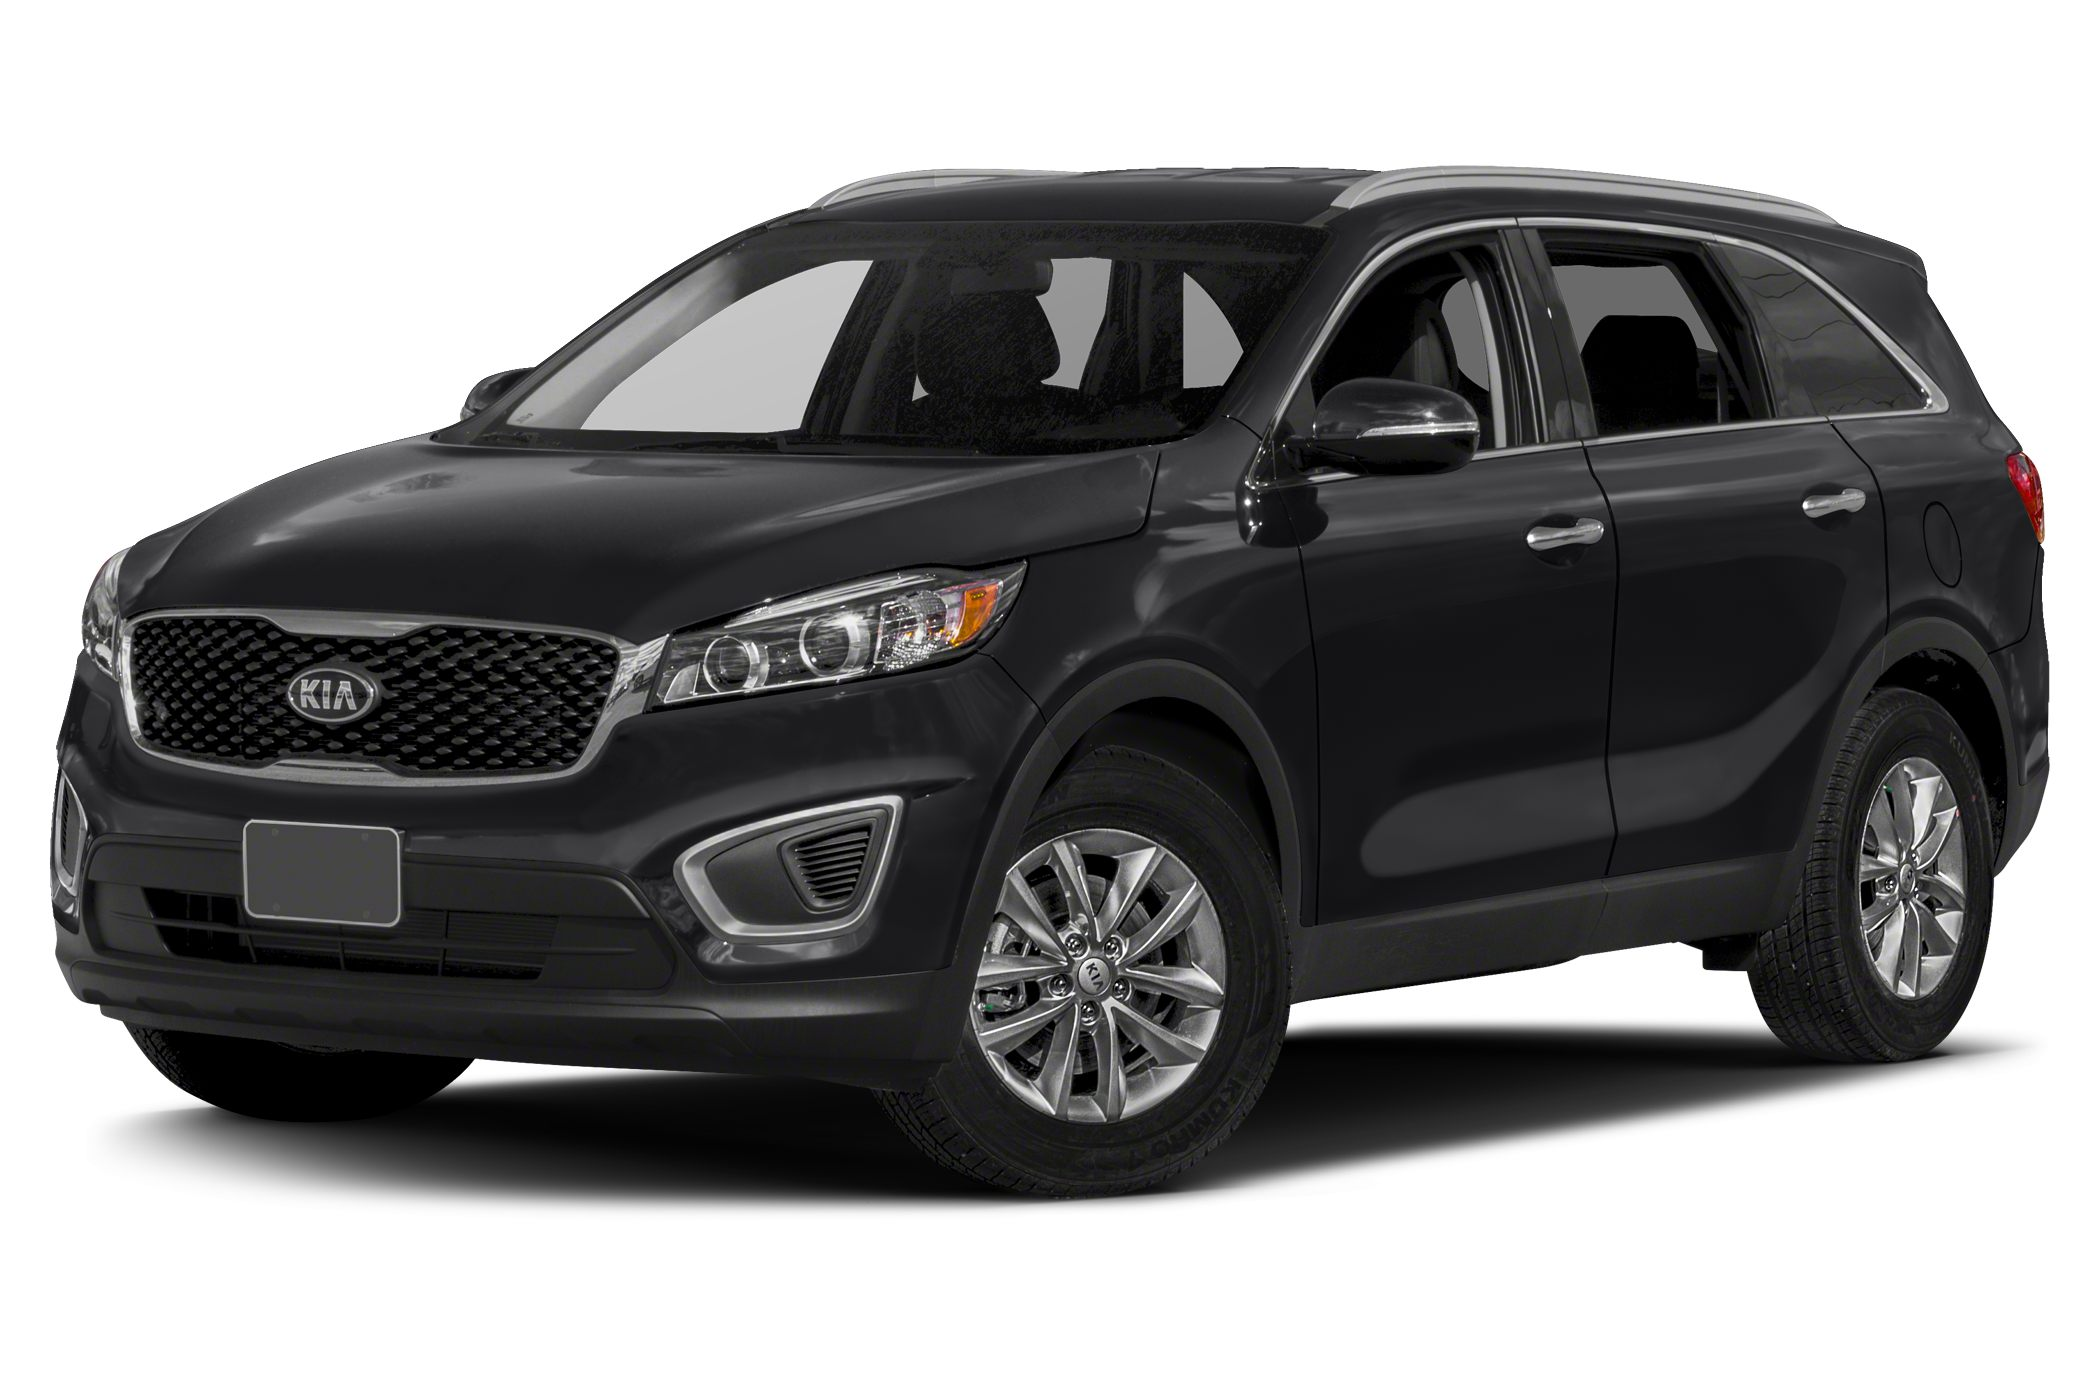 2016 Kia Sorento Trailer Hitch